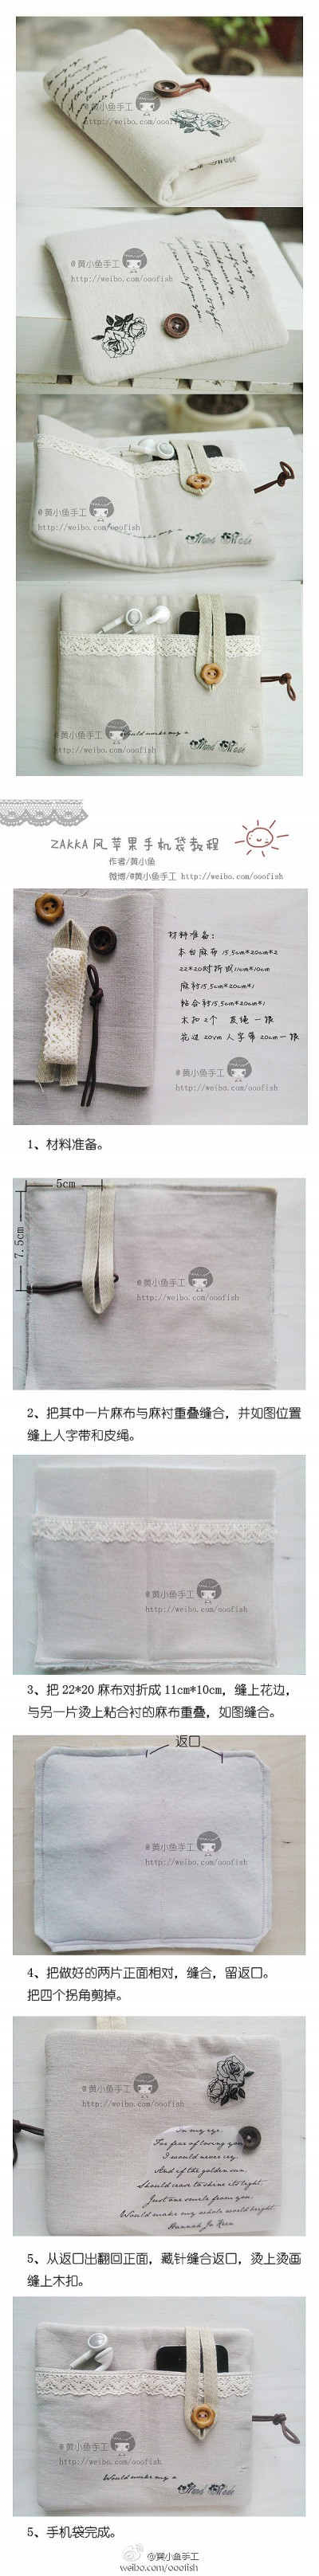 How to make your cool iphone bag step by step DIY tutorial instructions